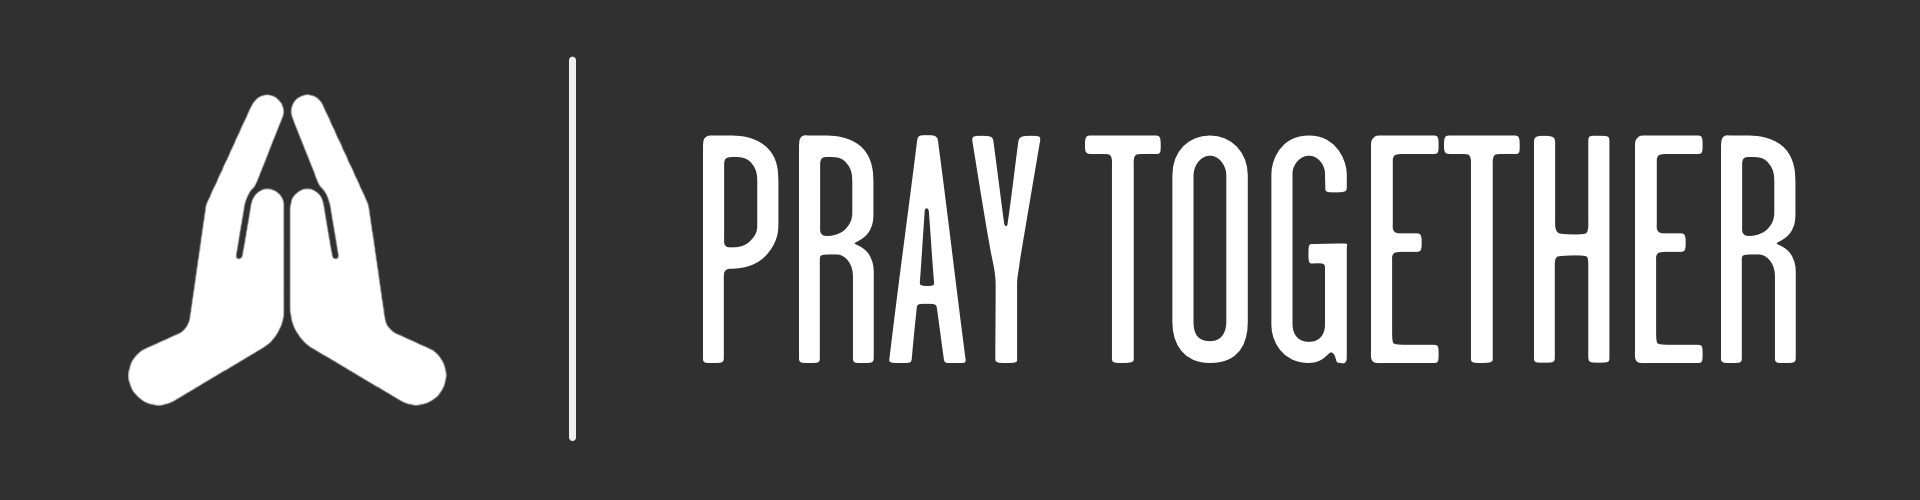 header - pray together.jpg